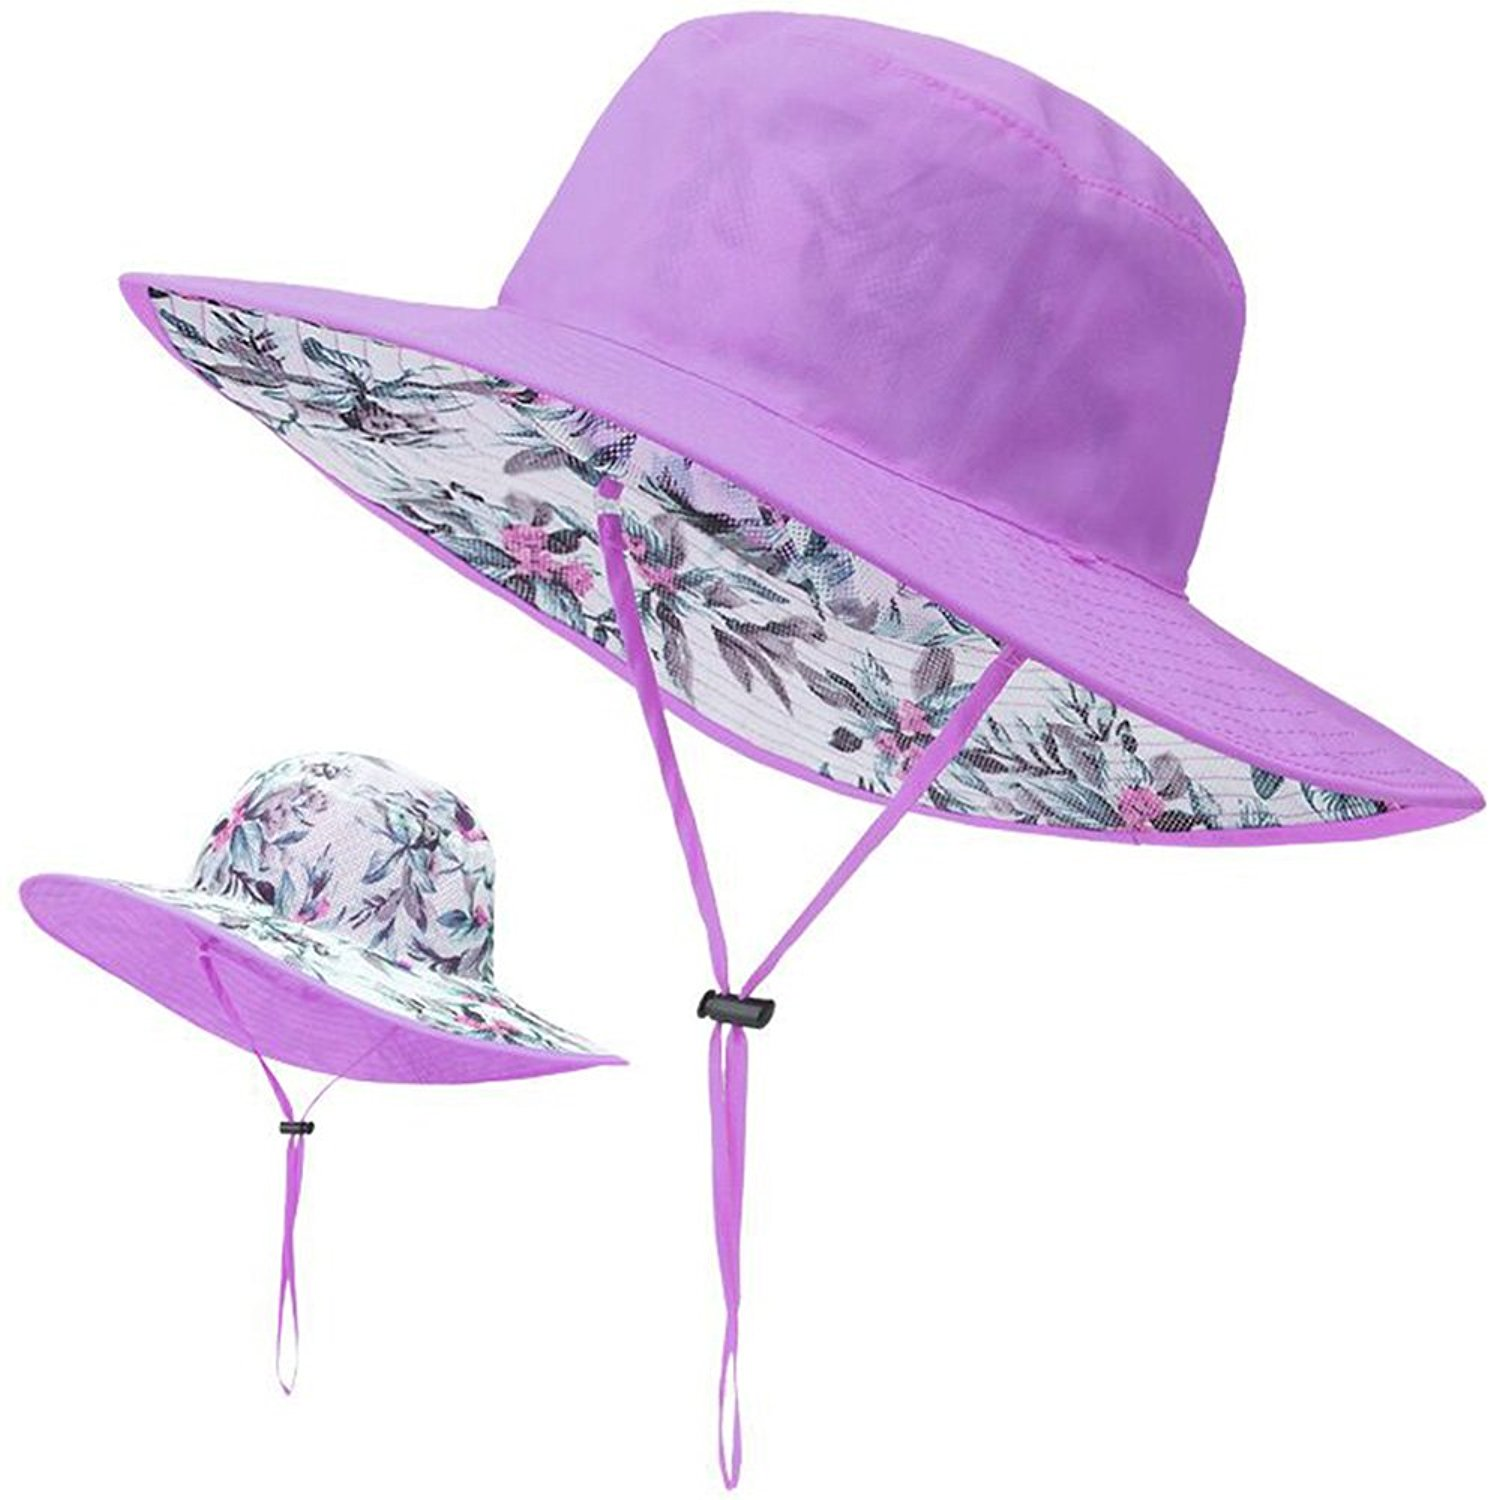 e3290496778 Get Quotations · Blackblume Womens Double-side Summer Cotton Beach Hat SPF  50+ UV Protection Sun Hat